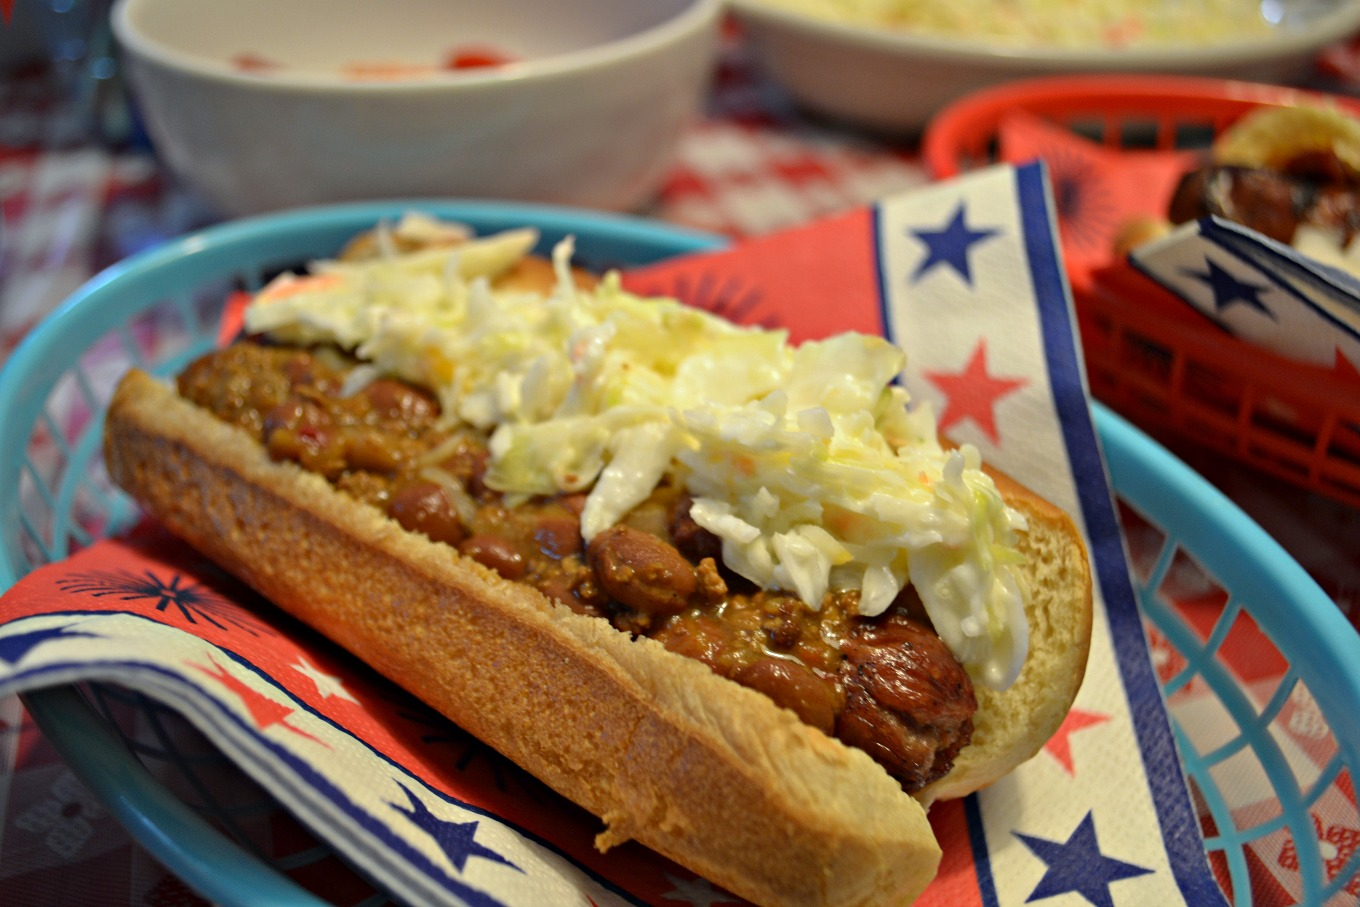 Chili slaw dog on the DIY hot dog bar - thediybungalow.com